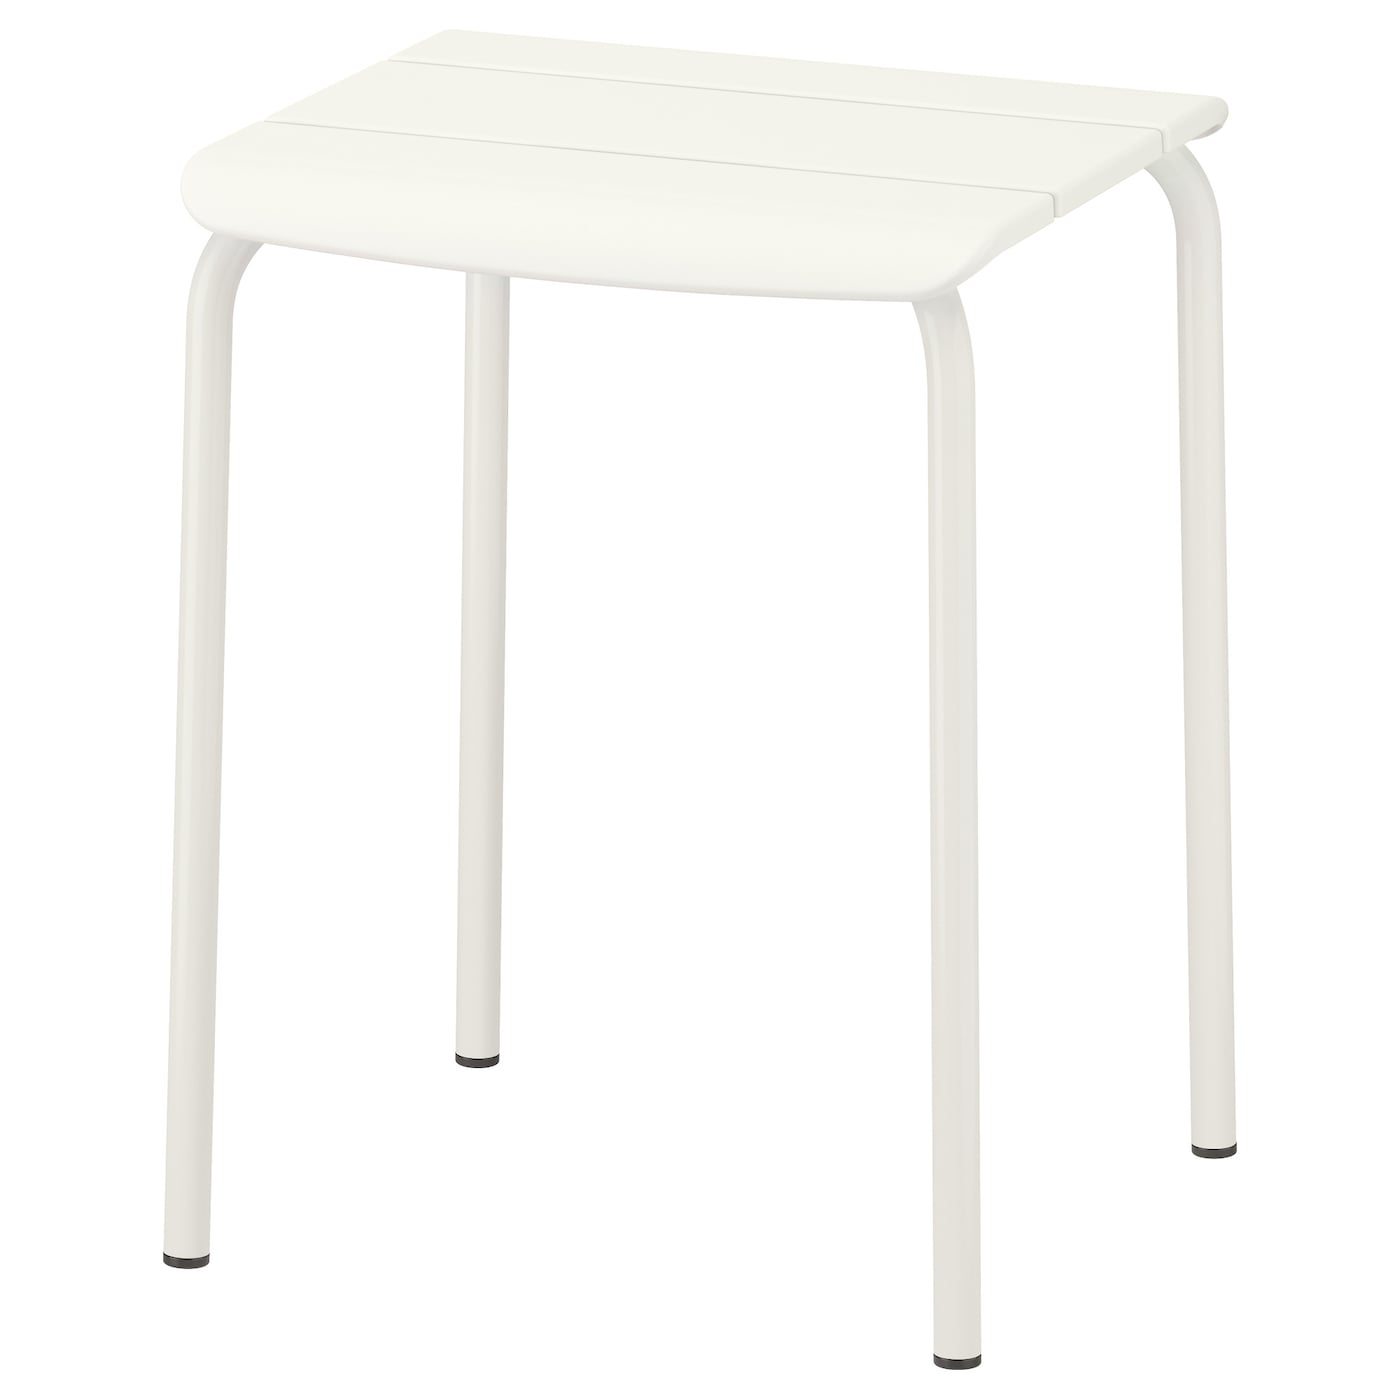 IKEA VÄDDÖ stool, outdoor Easy to keep clean – just wipe with a damp cloth.